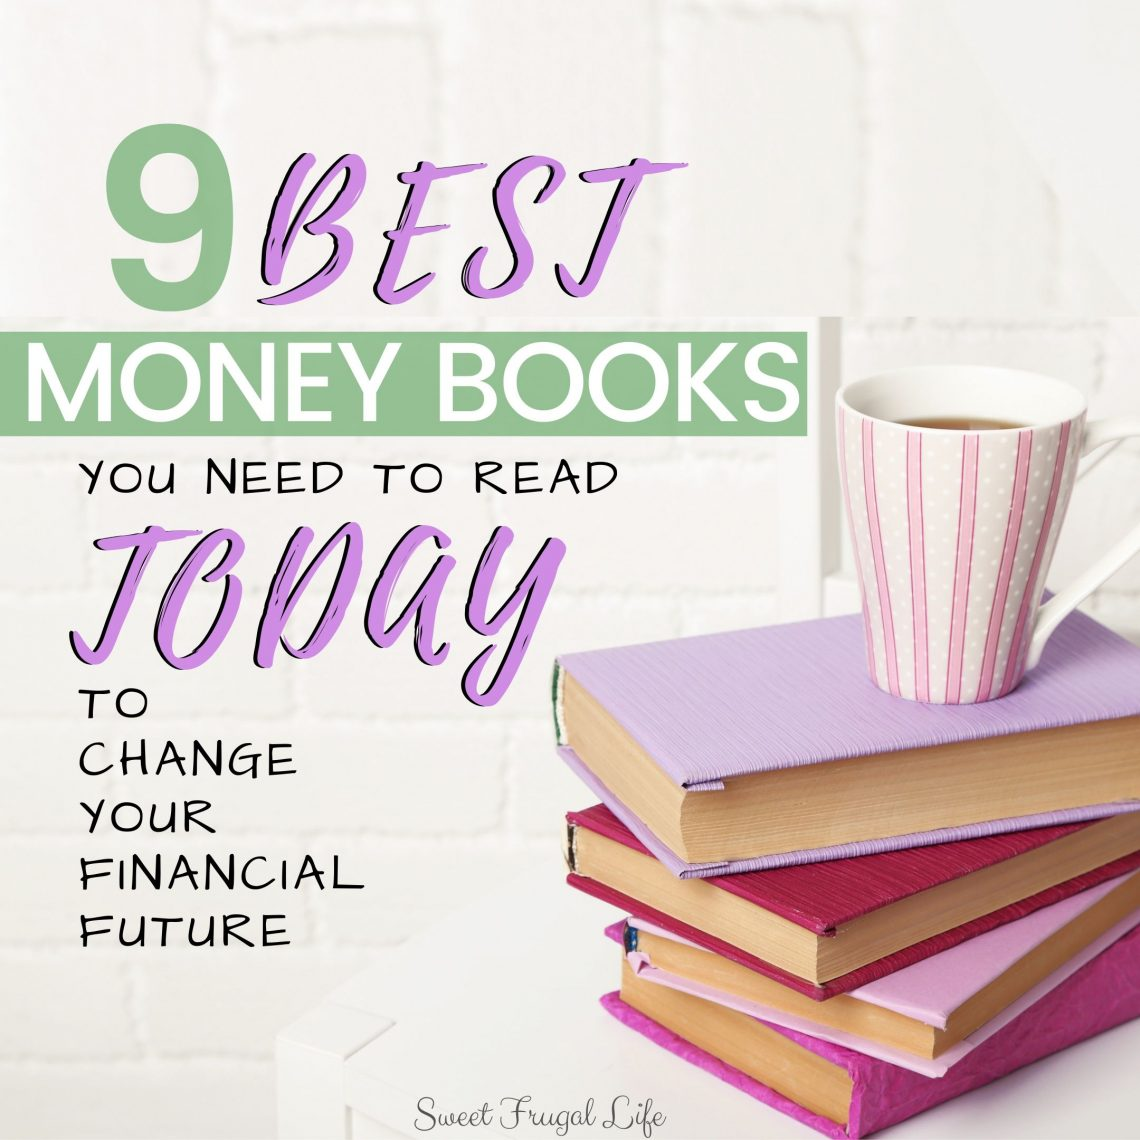 Best Money Books to Save Money